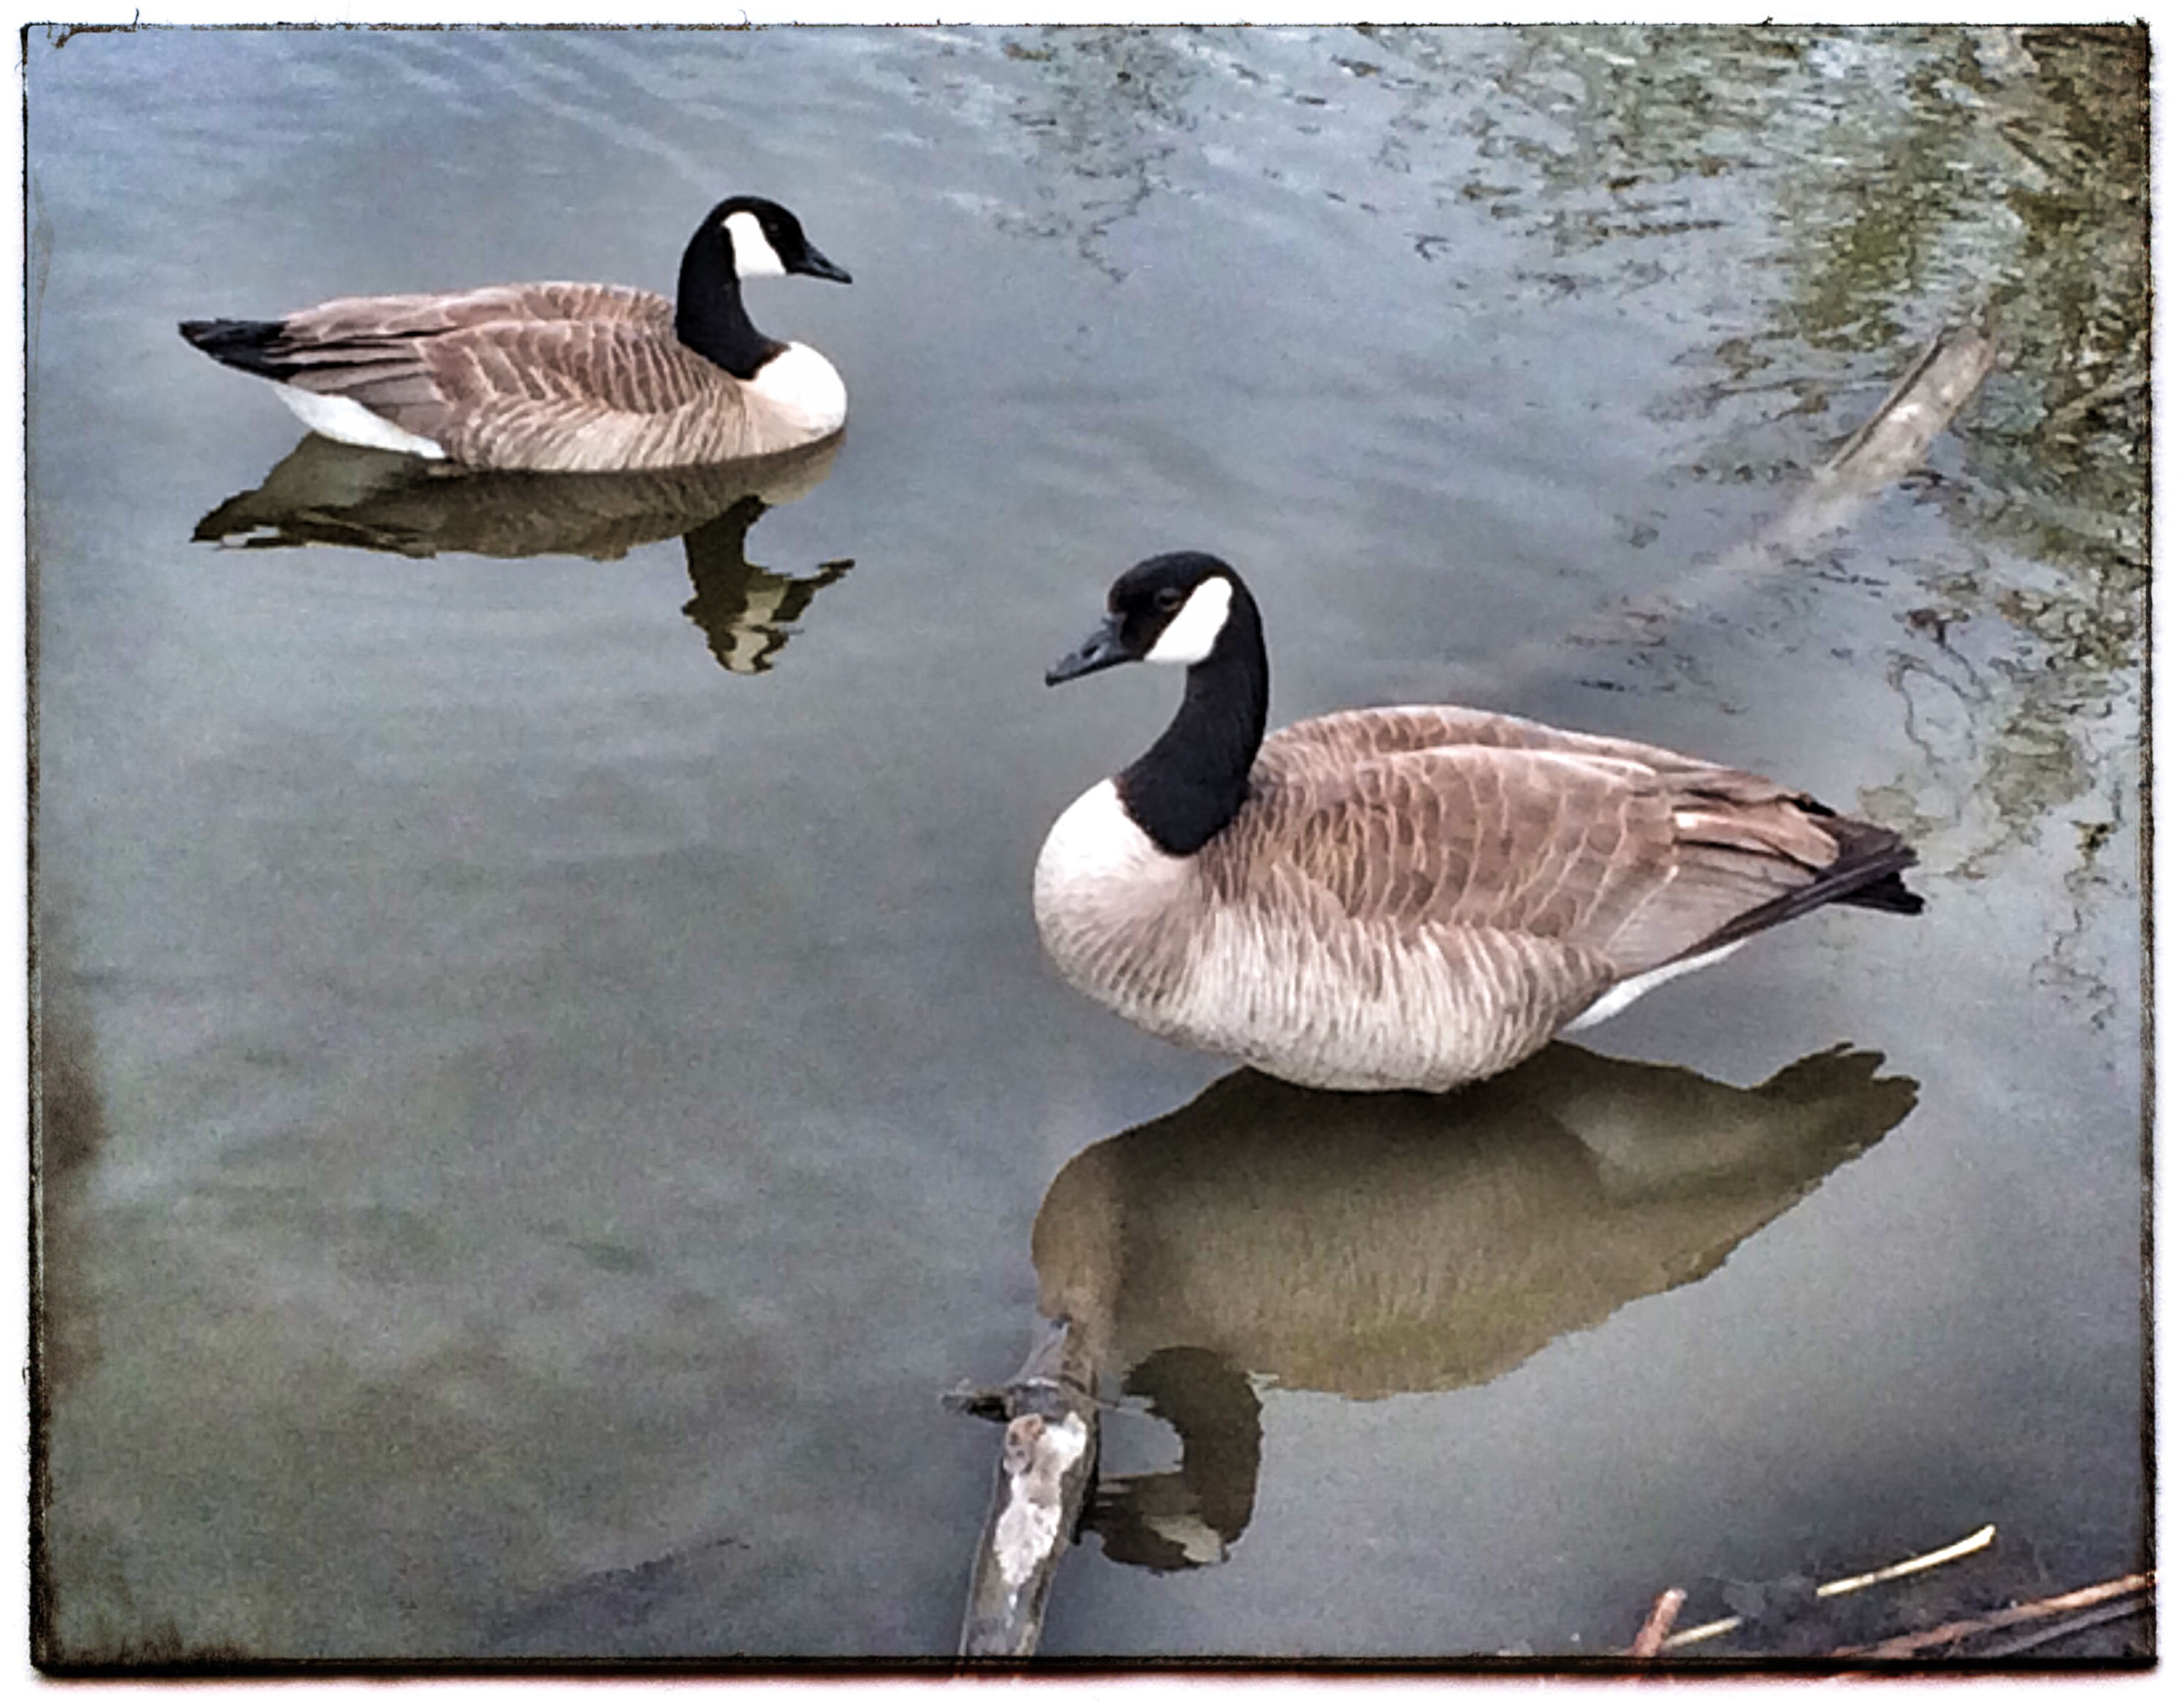 Canada Geese. Iphone 5 Photo Of The Day Photography Birds Geese